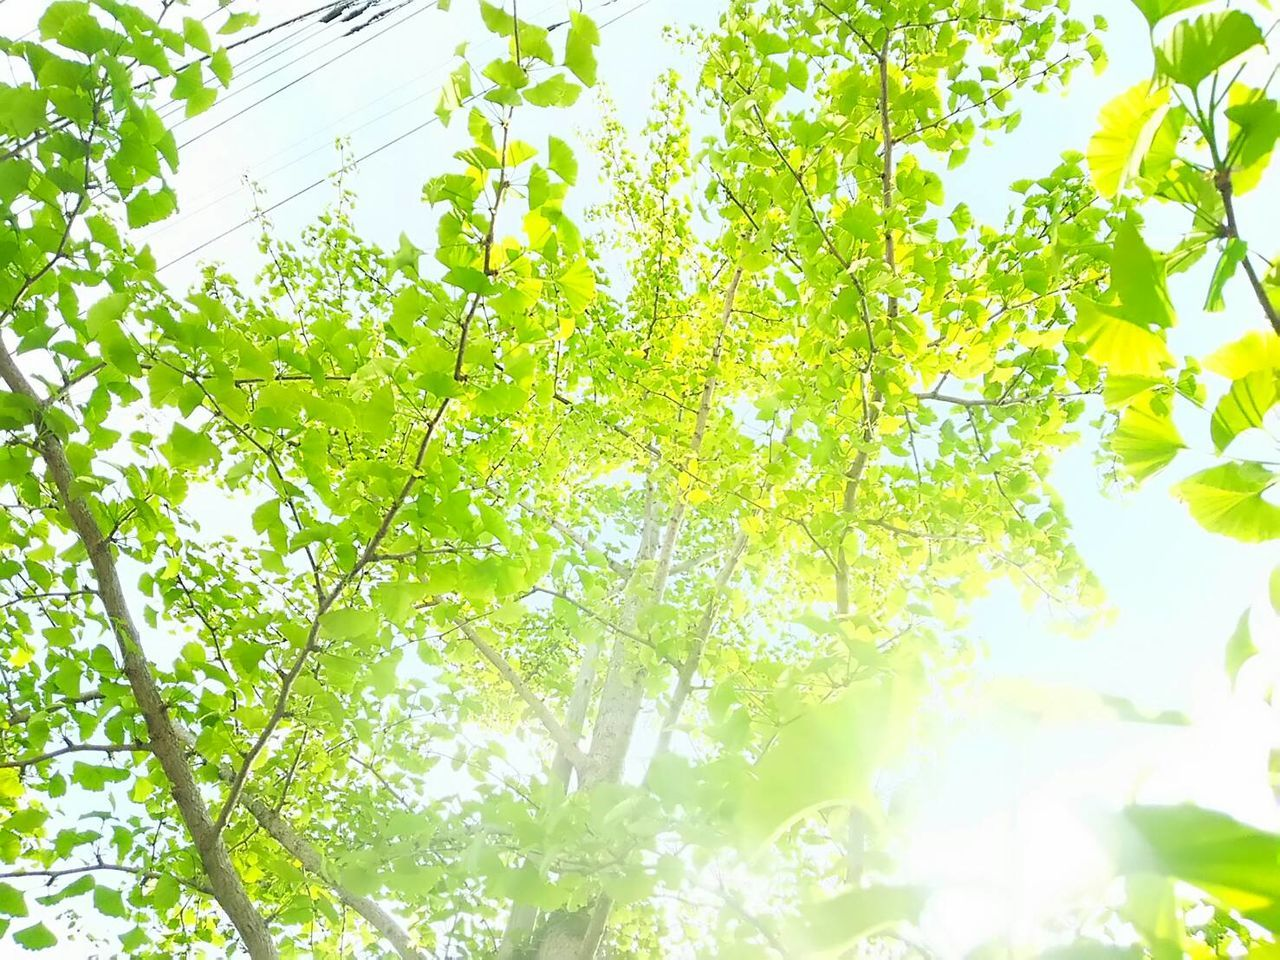 green color, nature, growth, leaf, low angle view, plant, beauty in nature, no people, tree, freshness, outdoors, day, branch, close-up